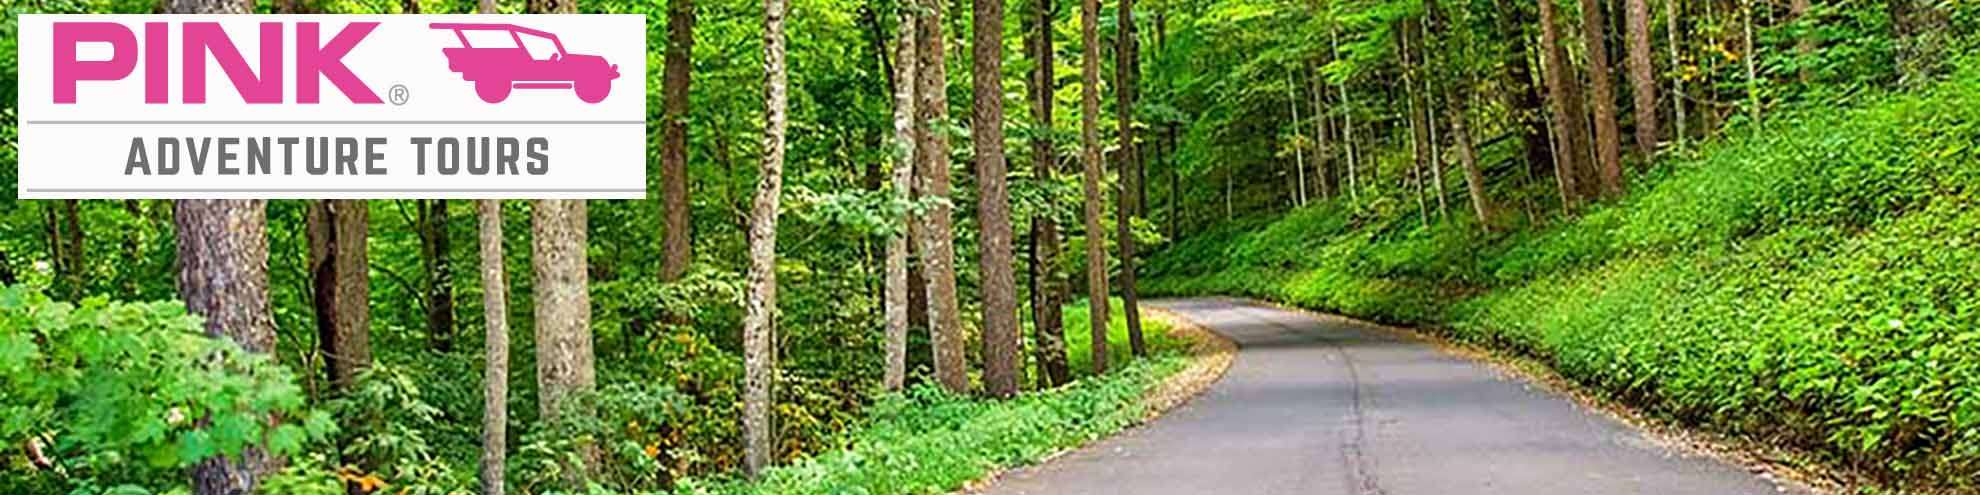 Pink Adventure Tours Discount Tickets - Roaring Fork Smoky Mountains Tour